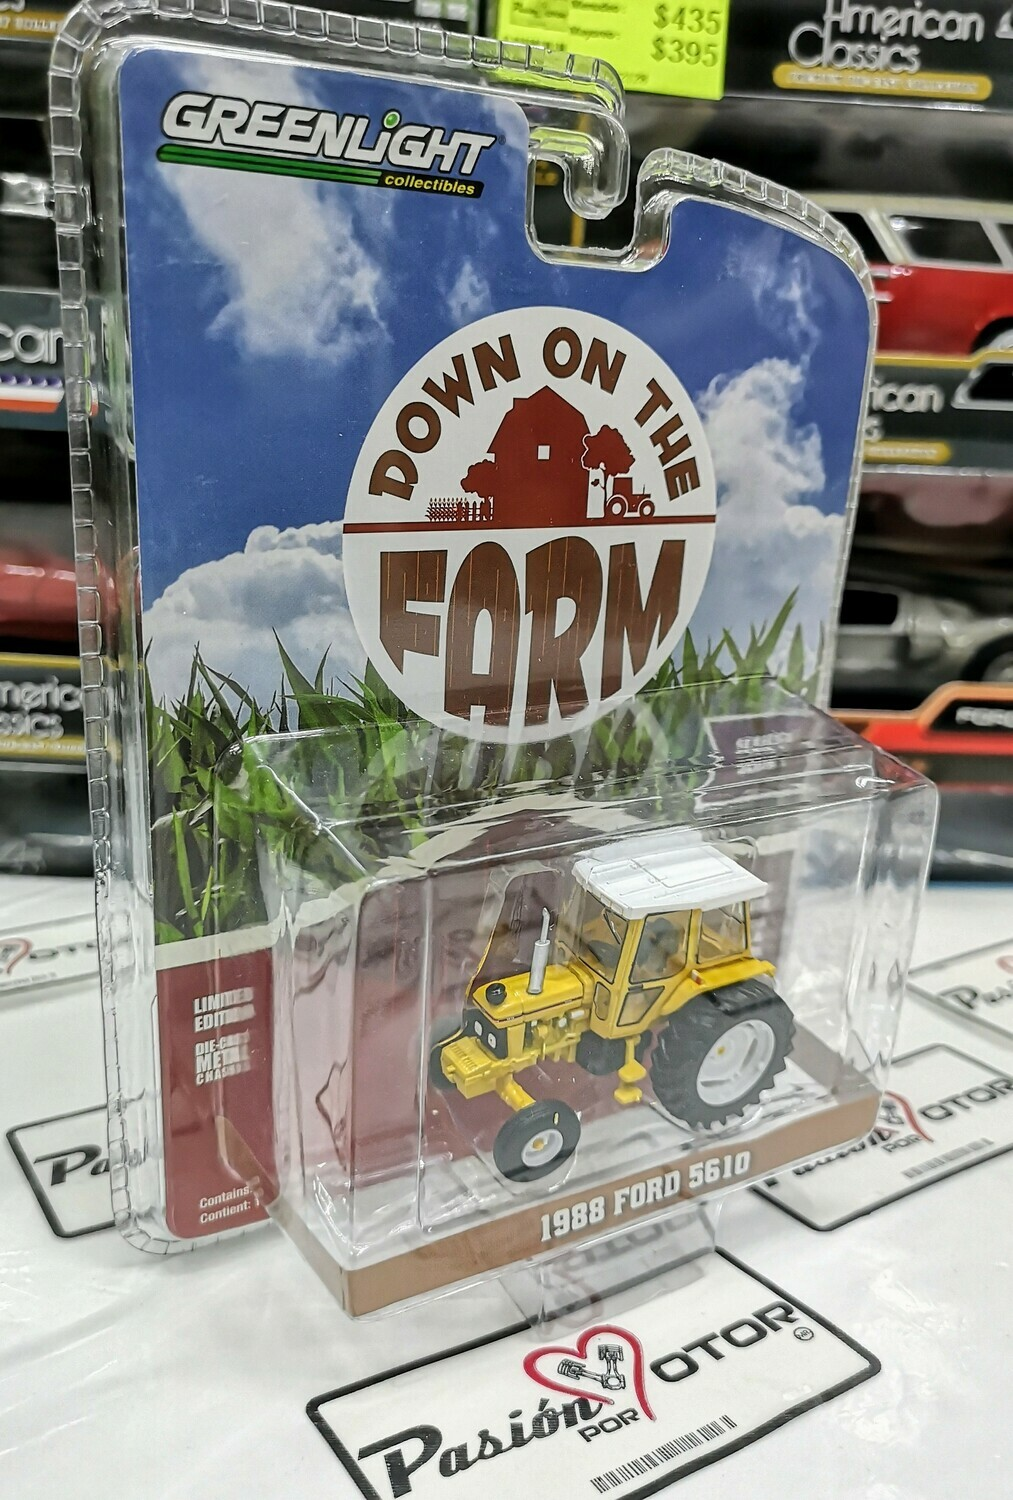 1:64 Ford 5610 1988 Amarillo Tractor Agricola Greenlight Down On The Farm Serie 1